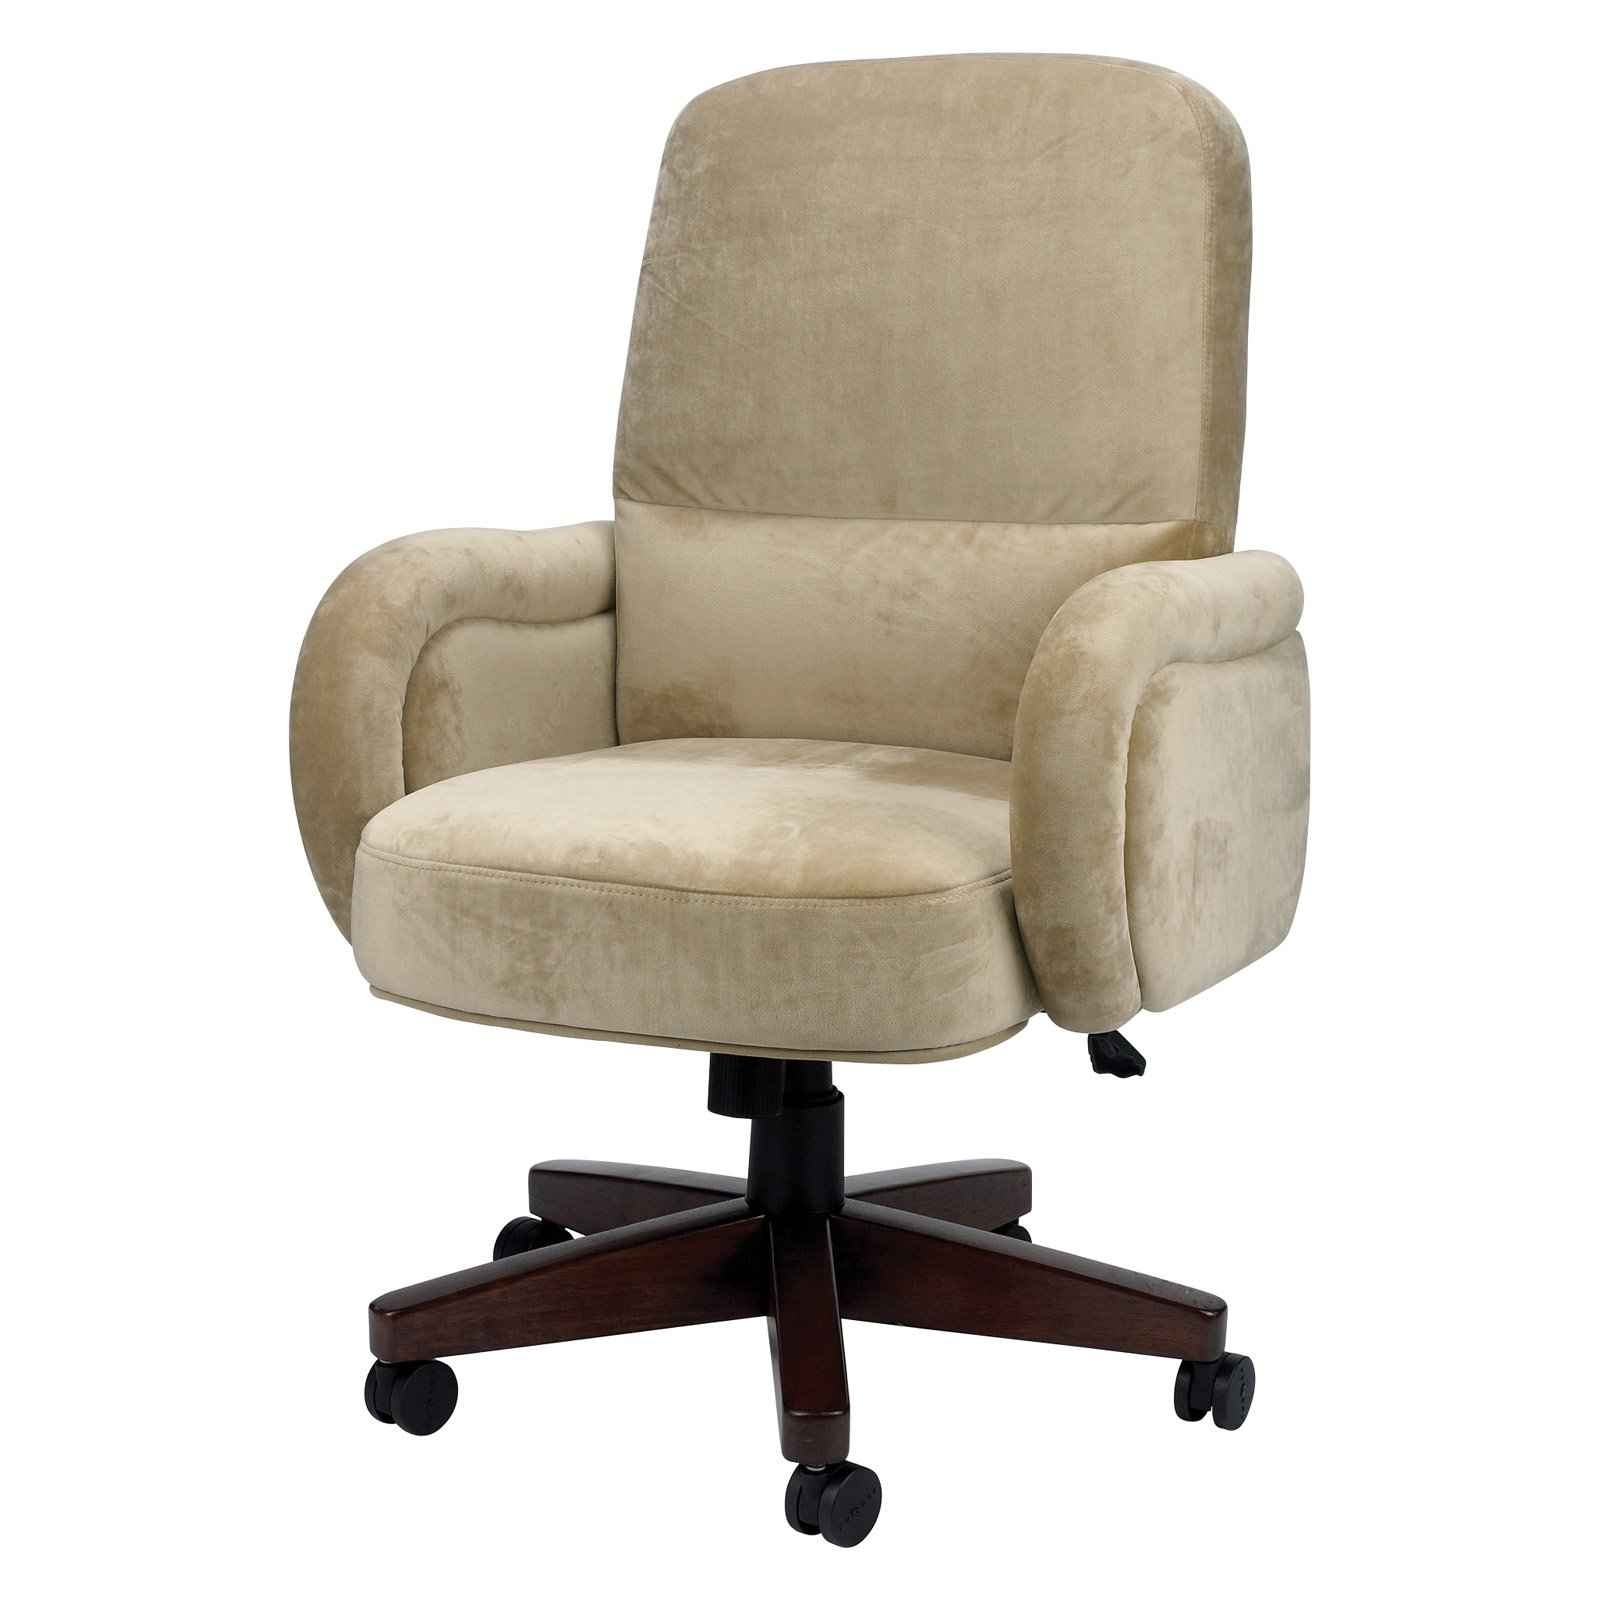 2019 Office: Office Chairs Ideas With White Fabric Executive Chair With For Fabric Executive Office Chairs (View 3 of 20)